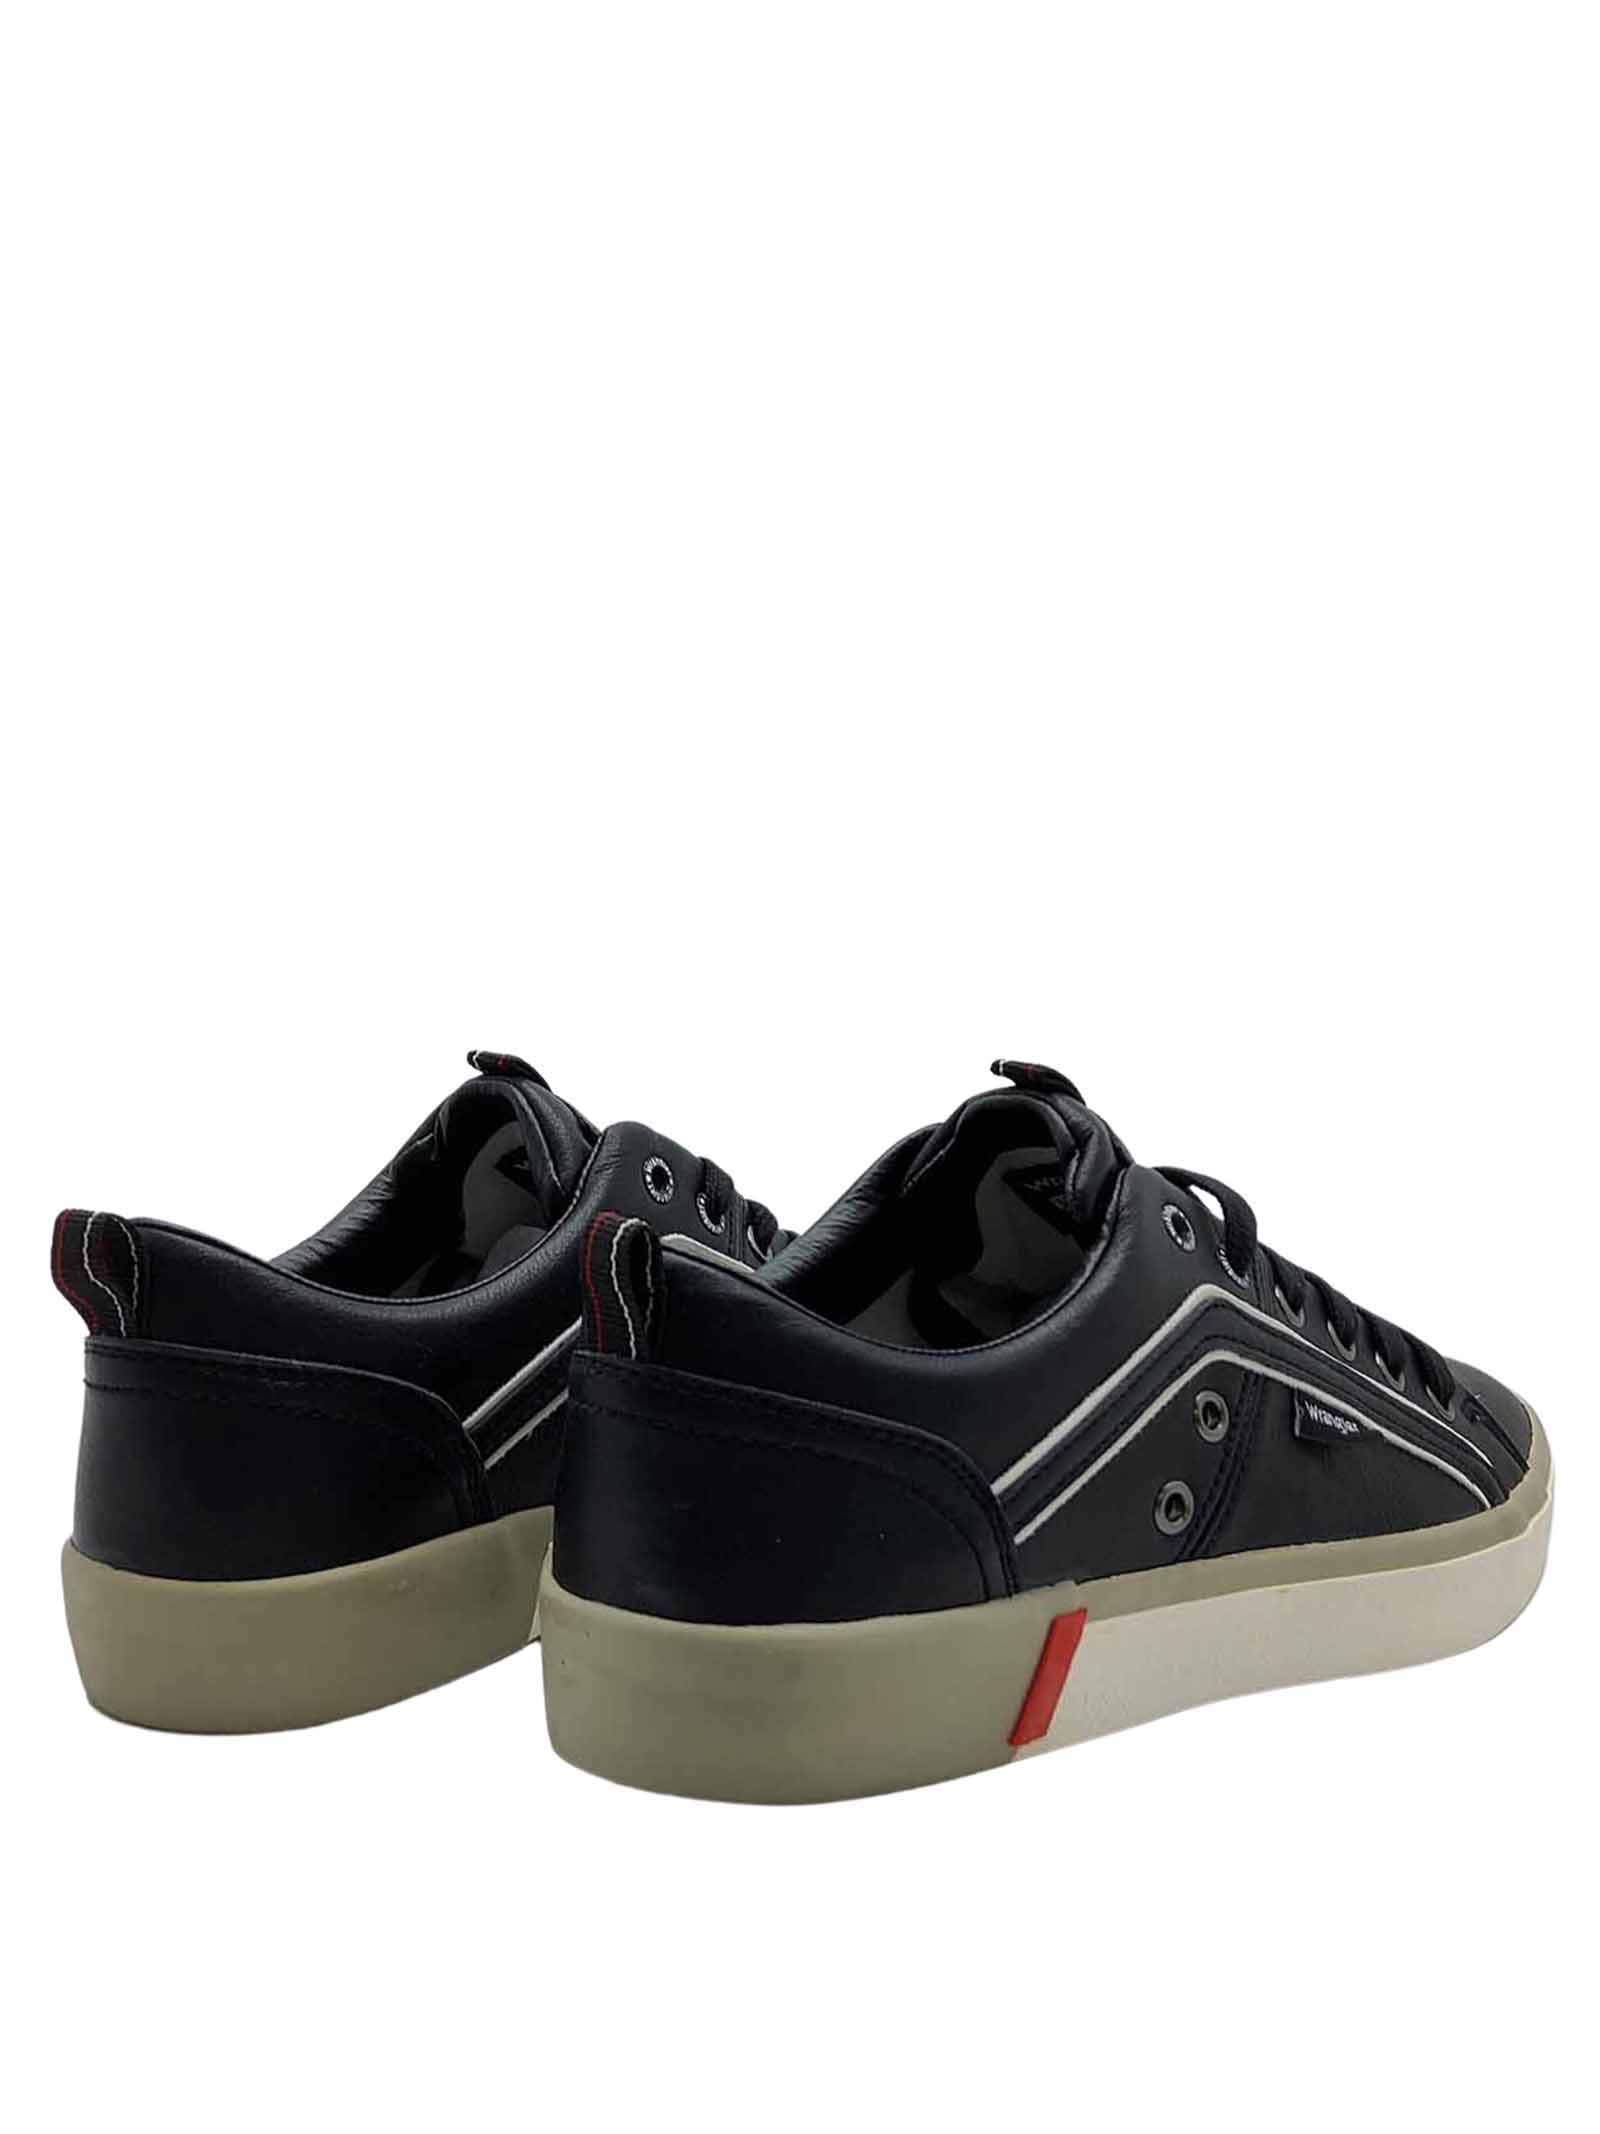 Men's Shoes Vegan Frisco Sneakers in Black Ecoleather and Rubber Bottom Wrangler   Sneakers   WM01033A062